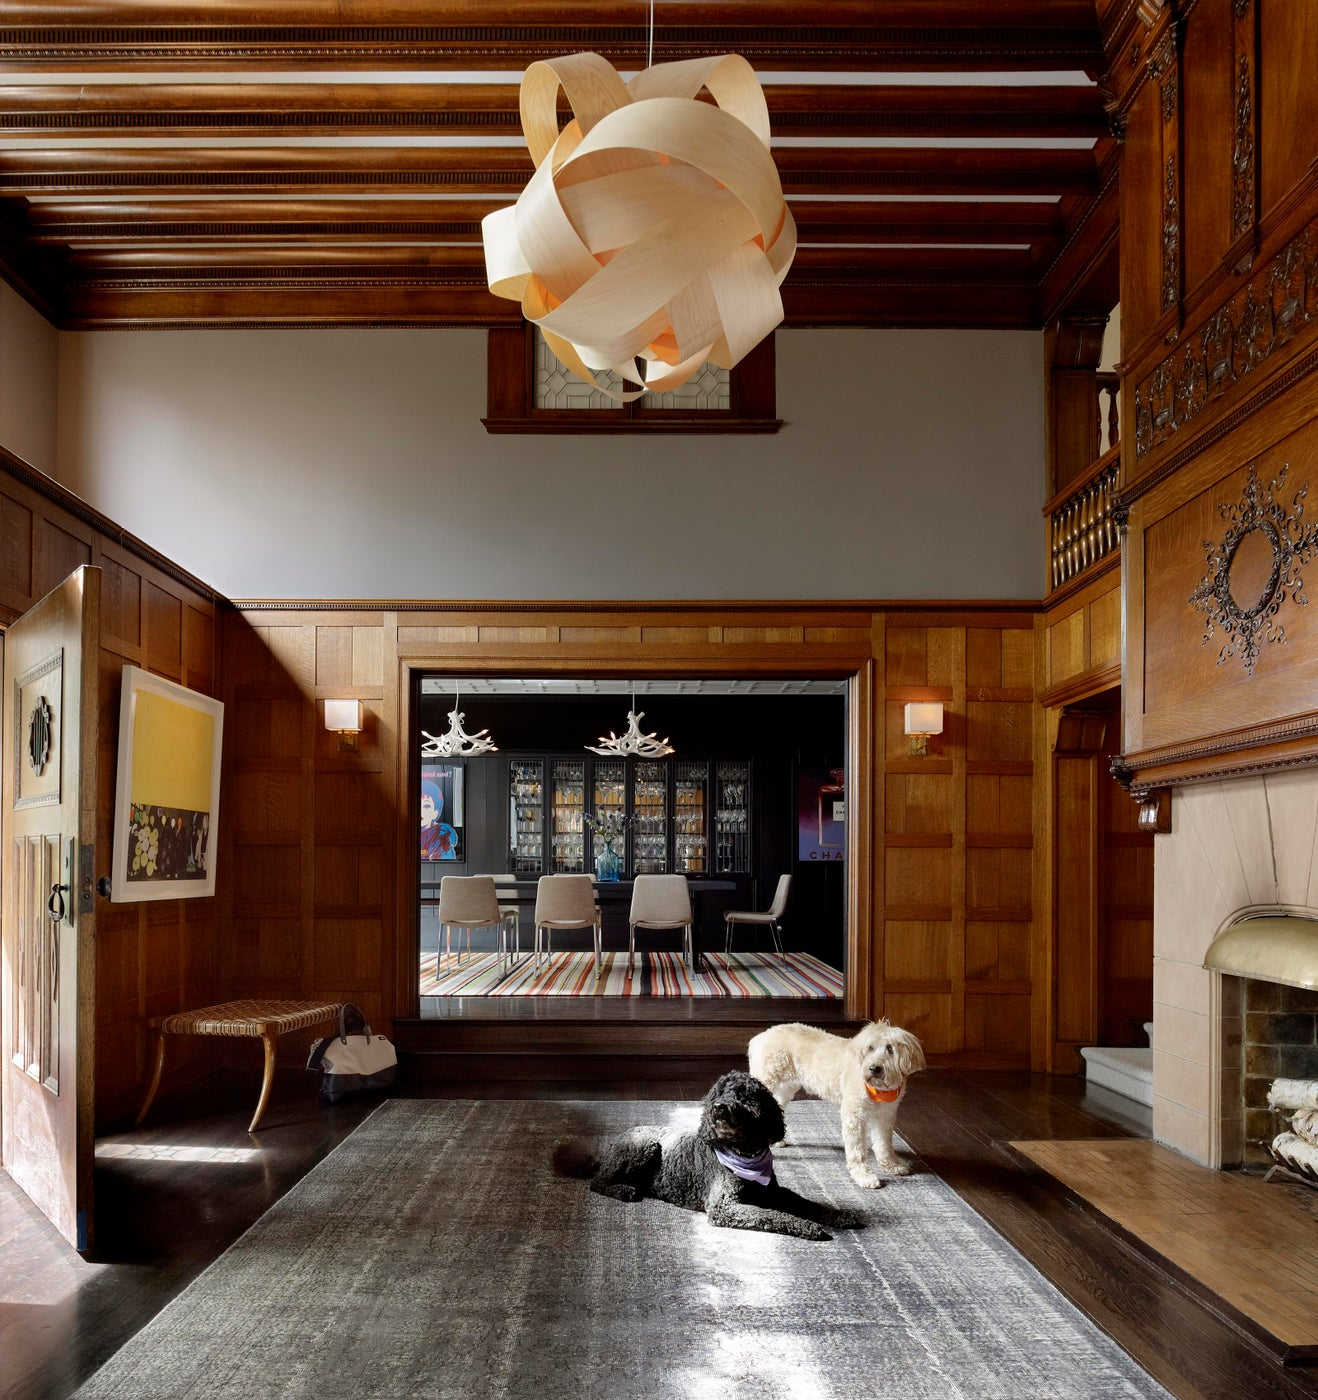 Foyer of this historic home in San Francisco's Pacific Heights Neighborhood